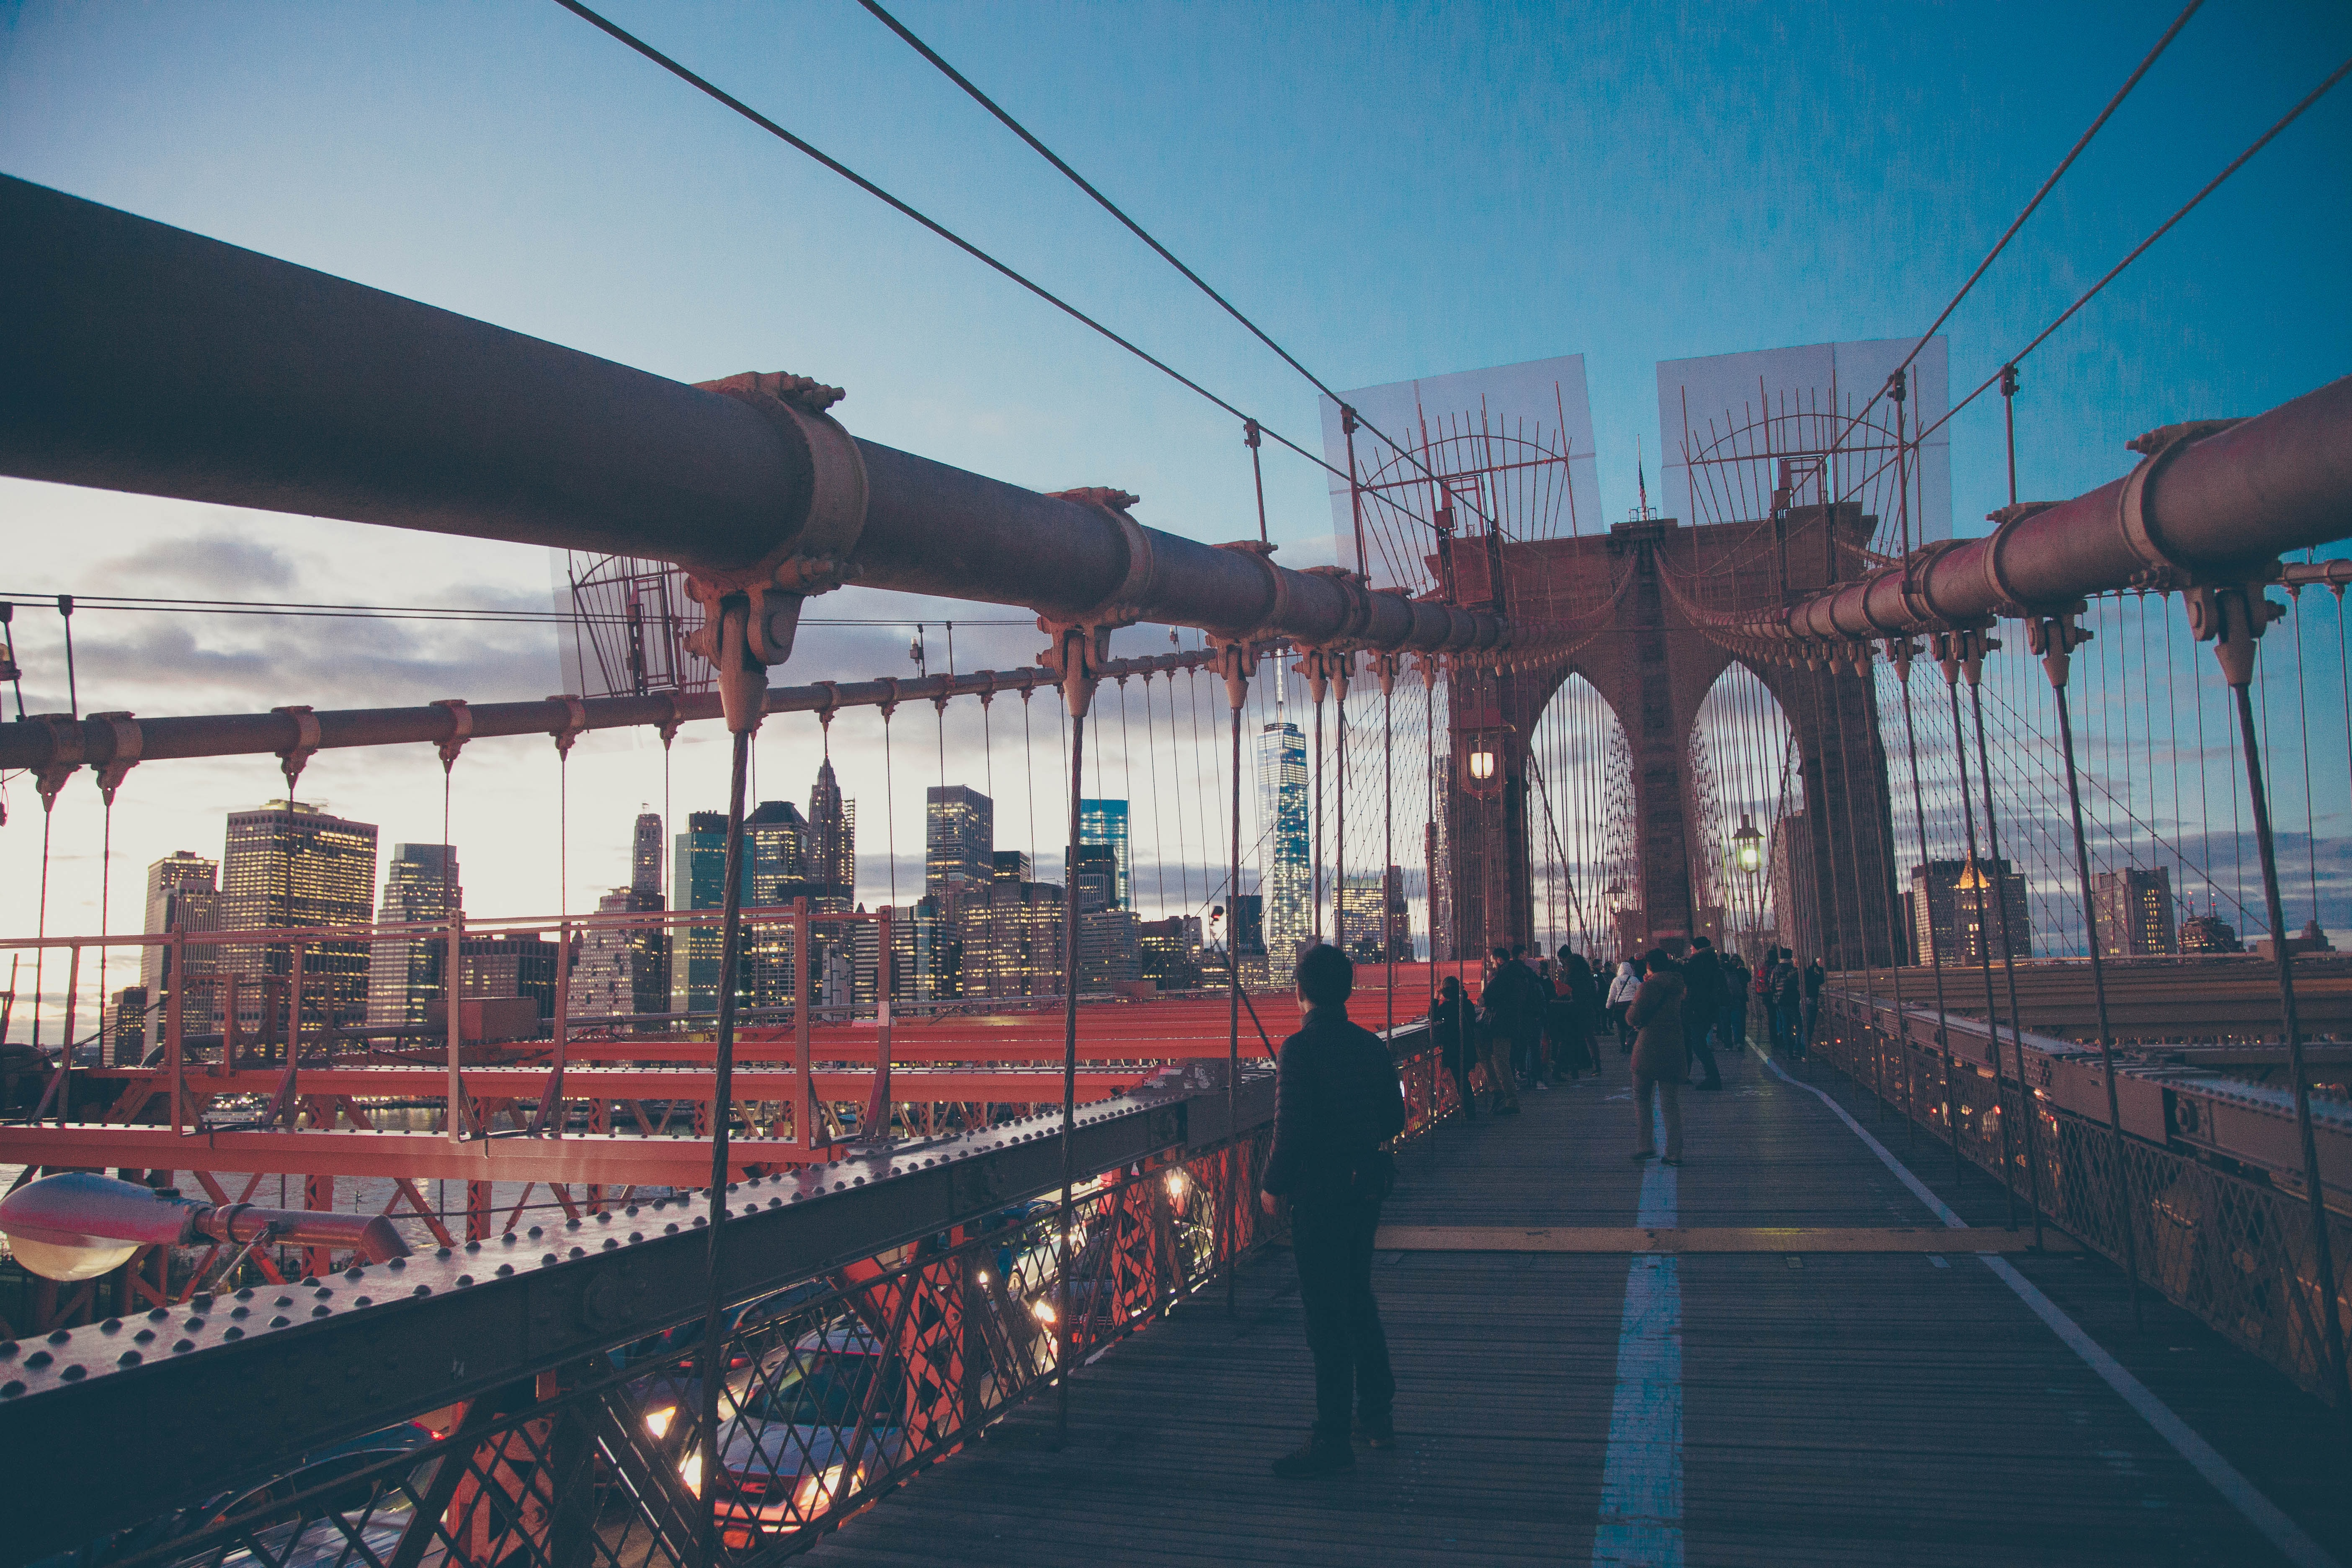 People walking along the Brooklyn Bridge in New York City at dusk